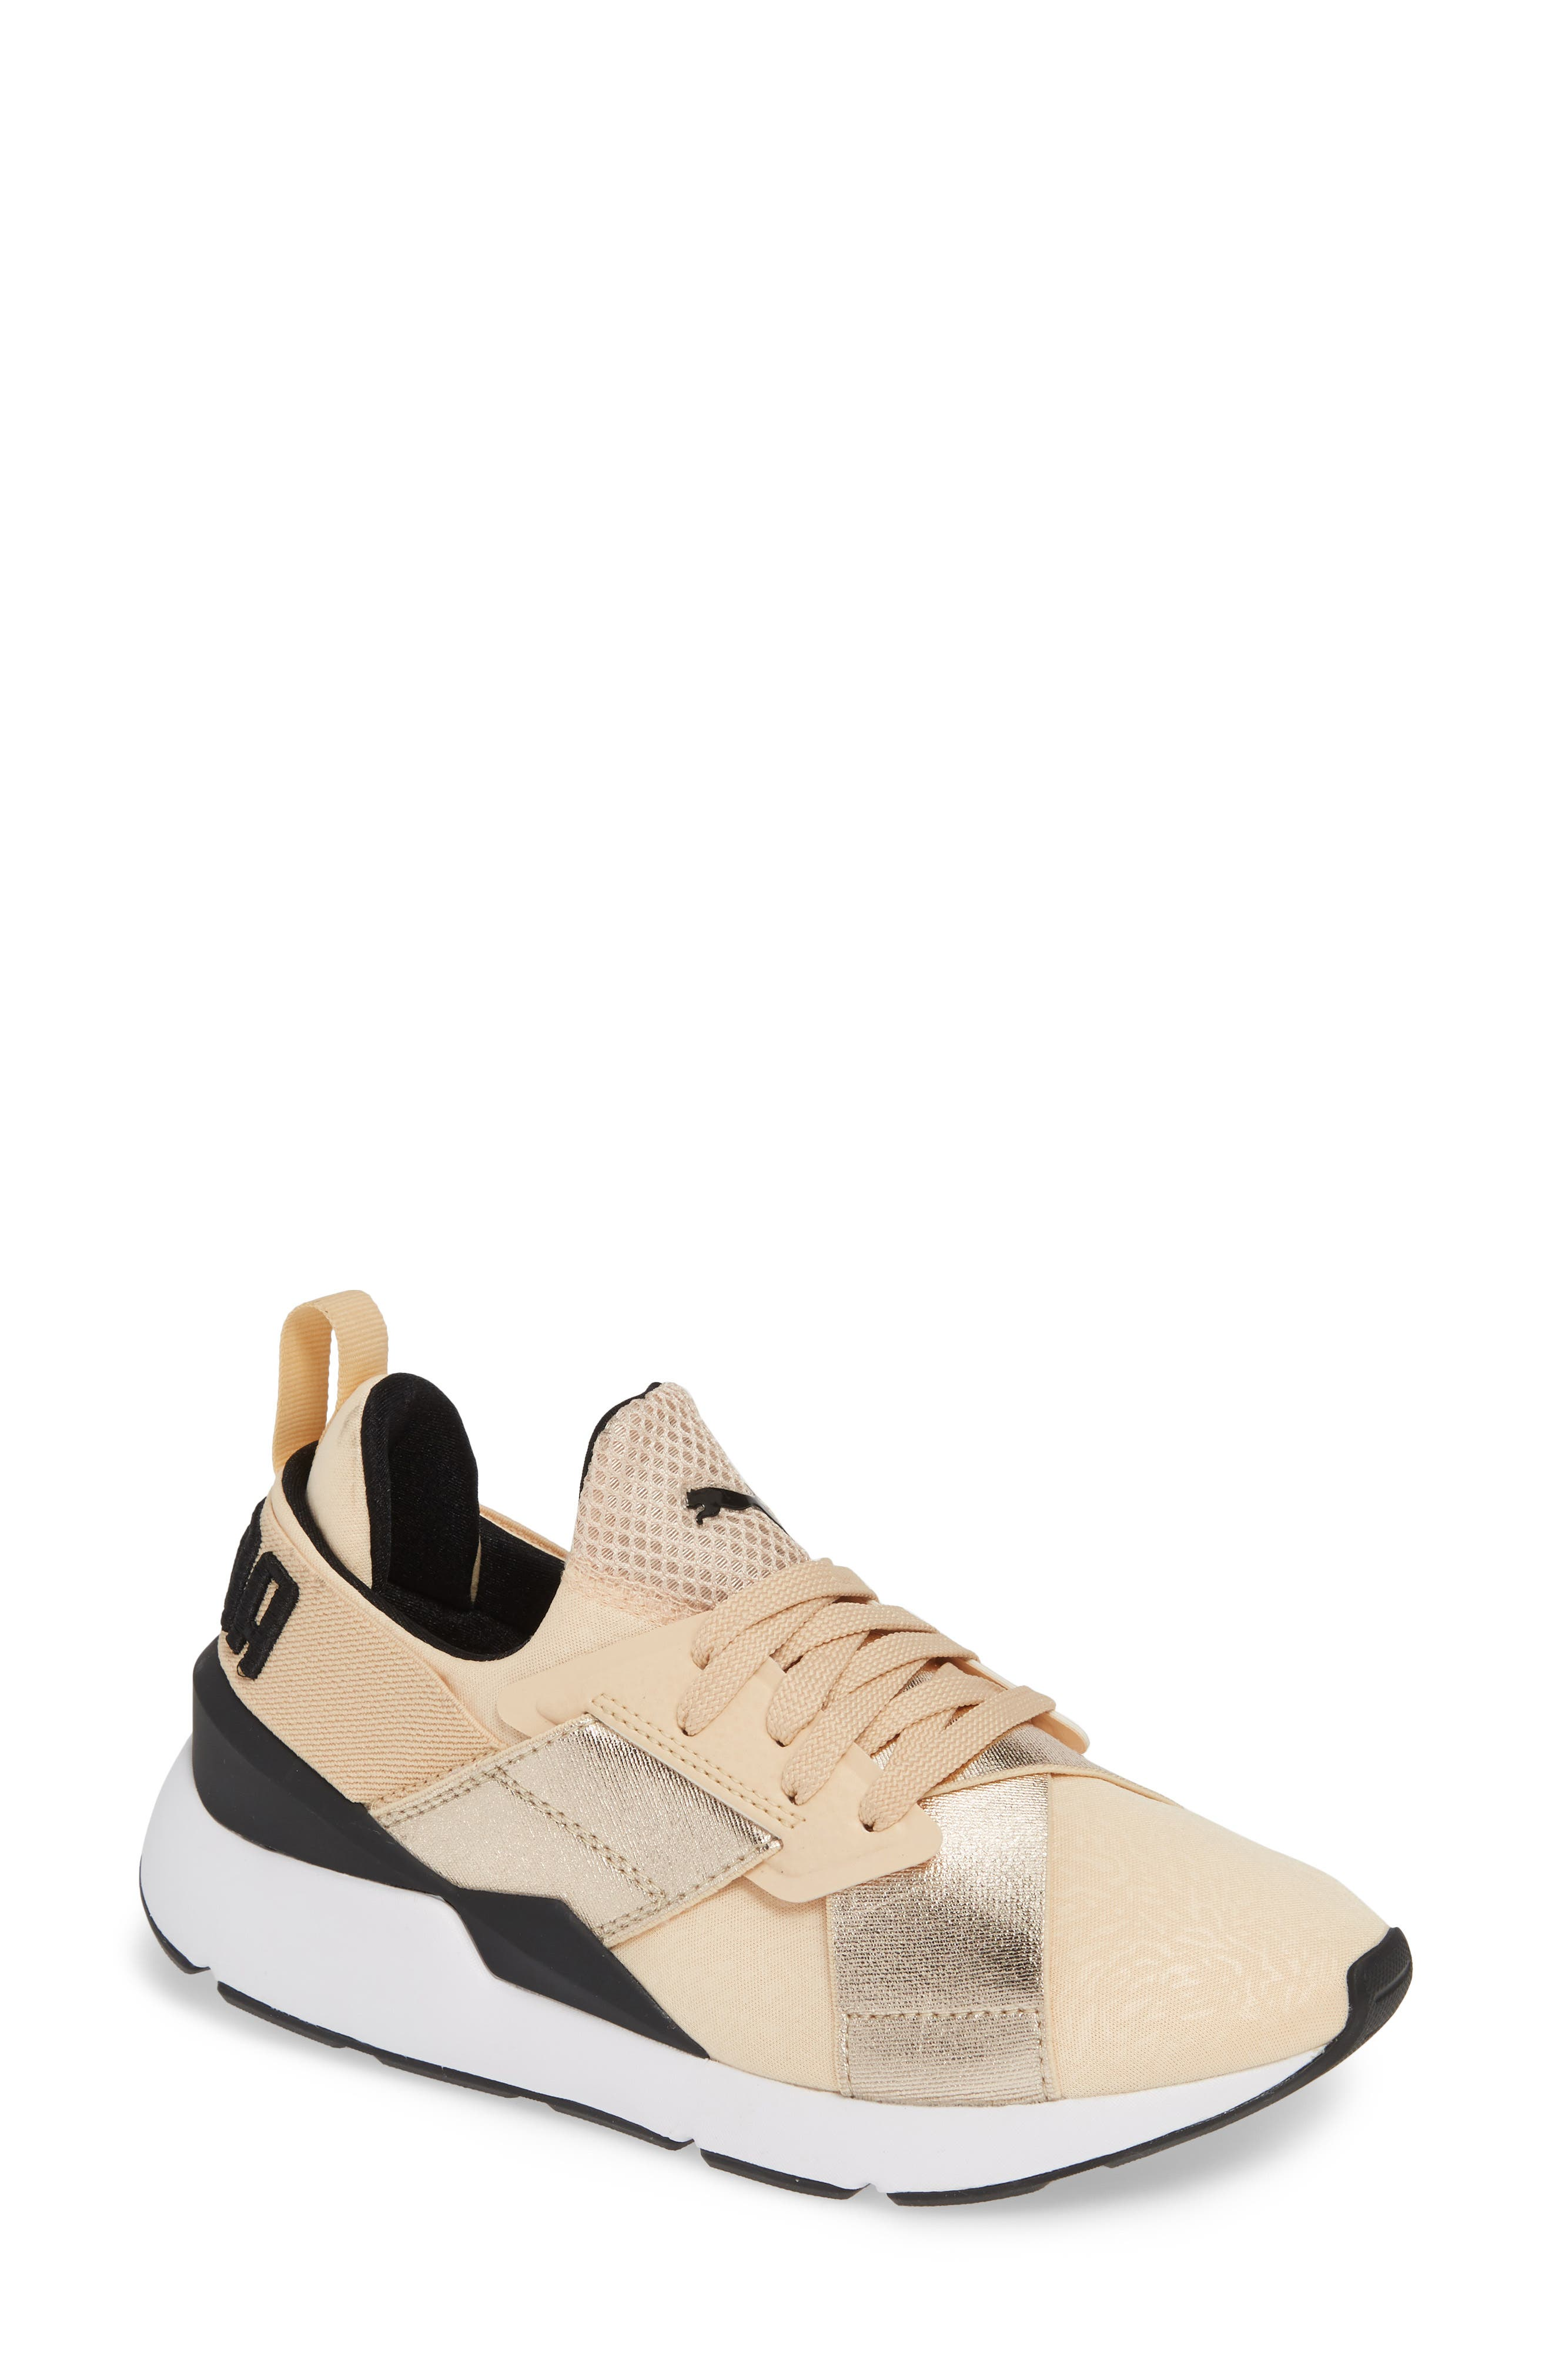 3fc01cc92142 PUMA Lace-Up Sneakers for Women